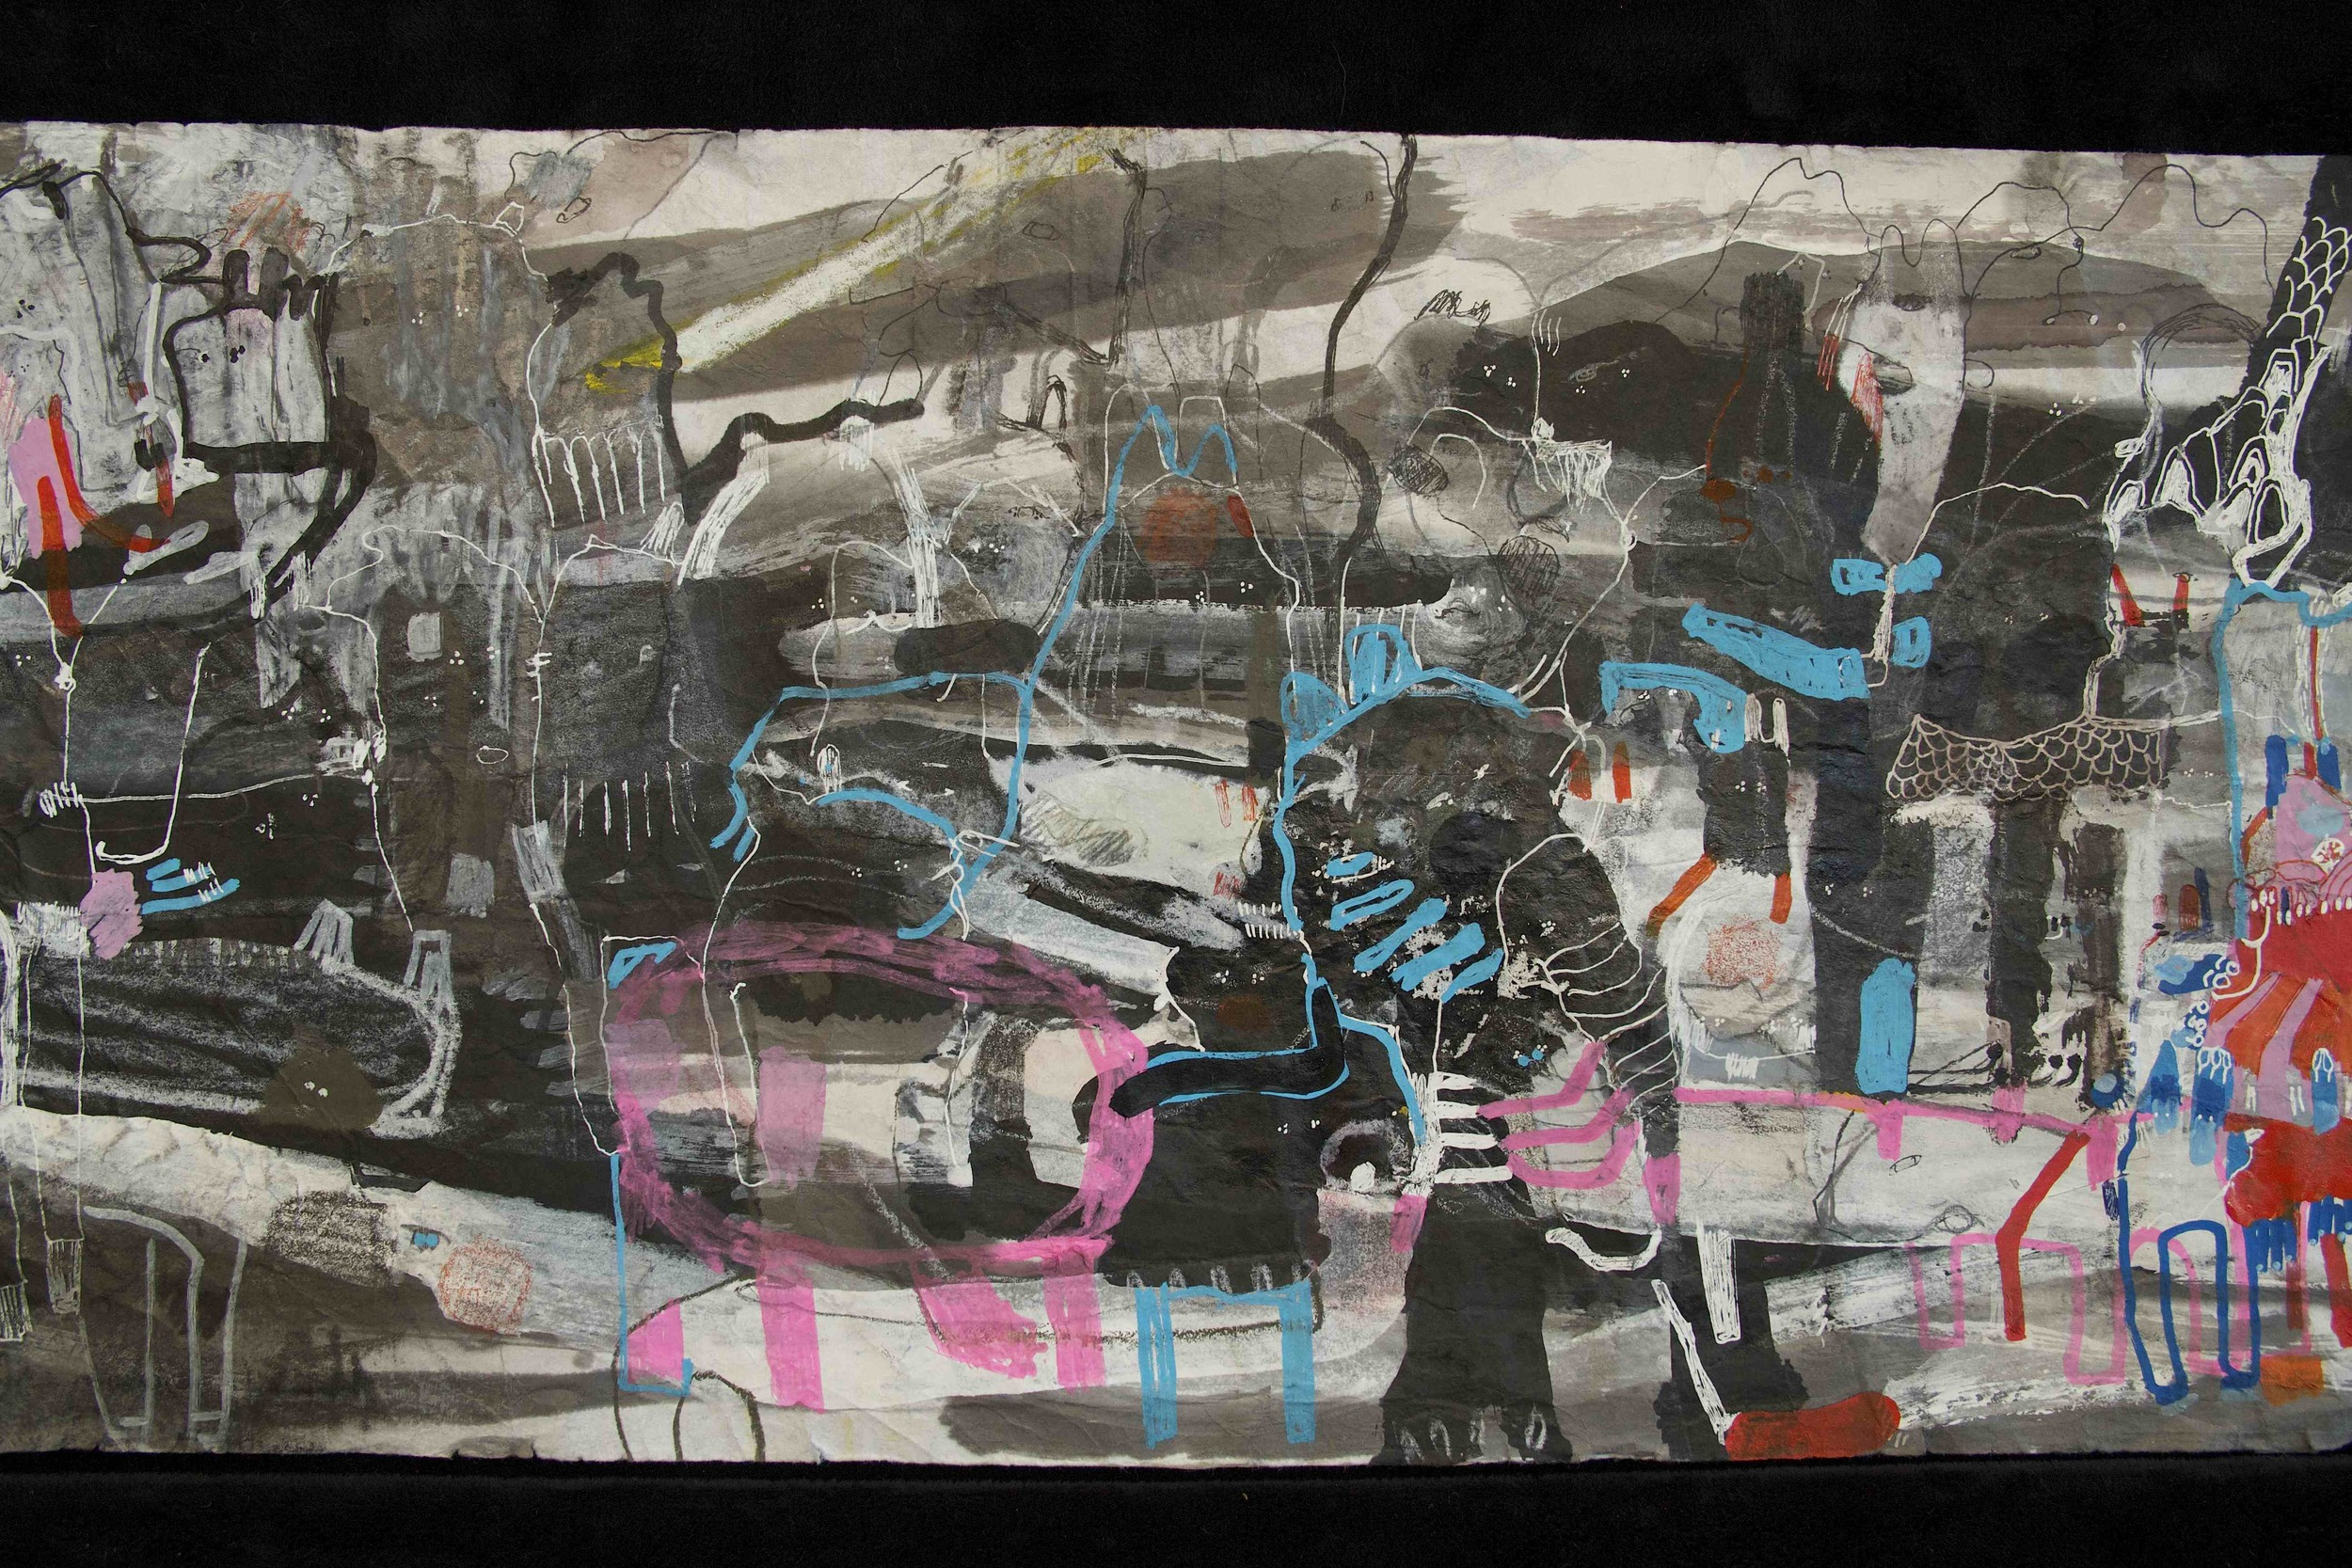 """[Detail no 9]  """"The Wind atop The Wood -Winds of Mount Meru Tangling Threads of Rainbow atop the Wood -Scroll 8""""   11 inches x 60 feet  ink, watercolor, gouache, dye, lost & found paper, crayon and graphite on mulberry paper scroll  2015"""